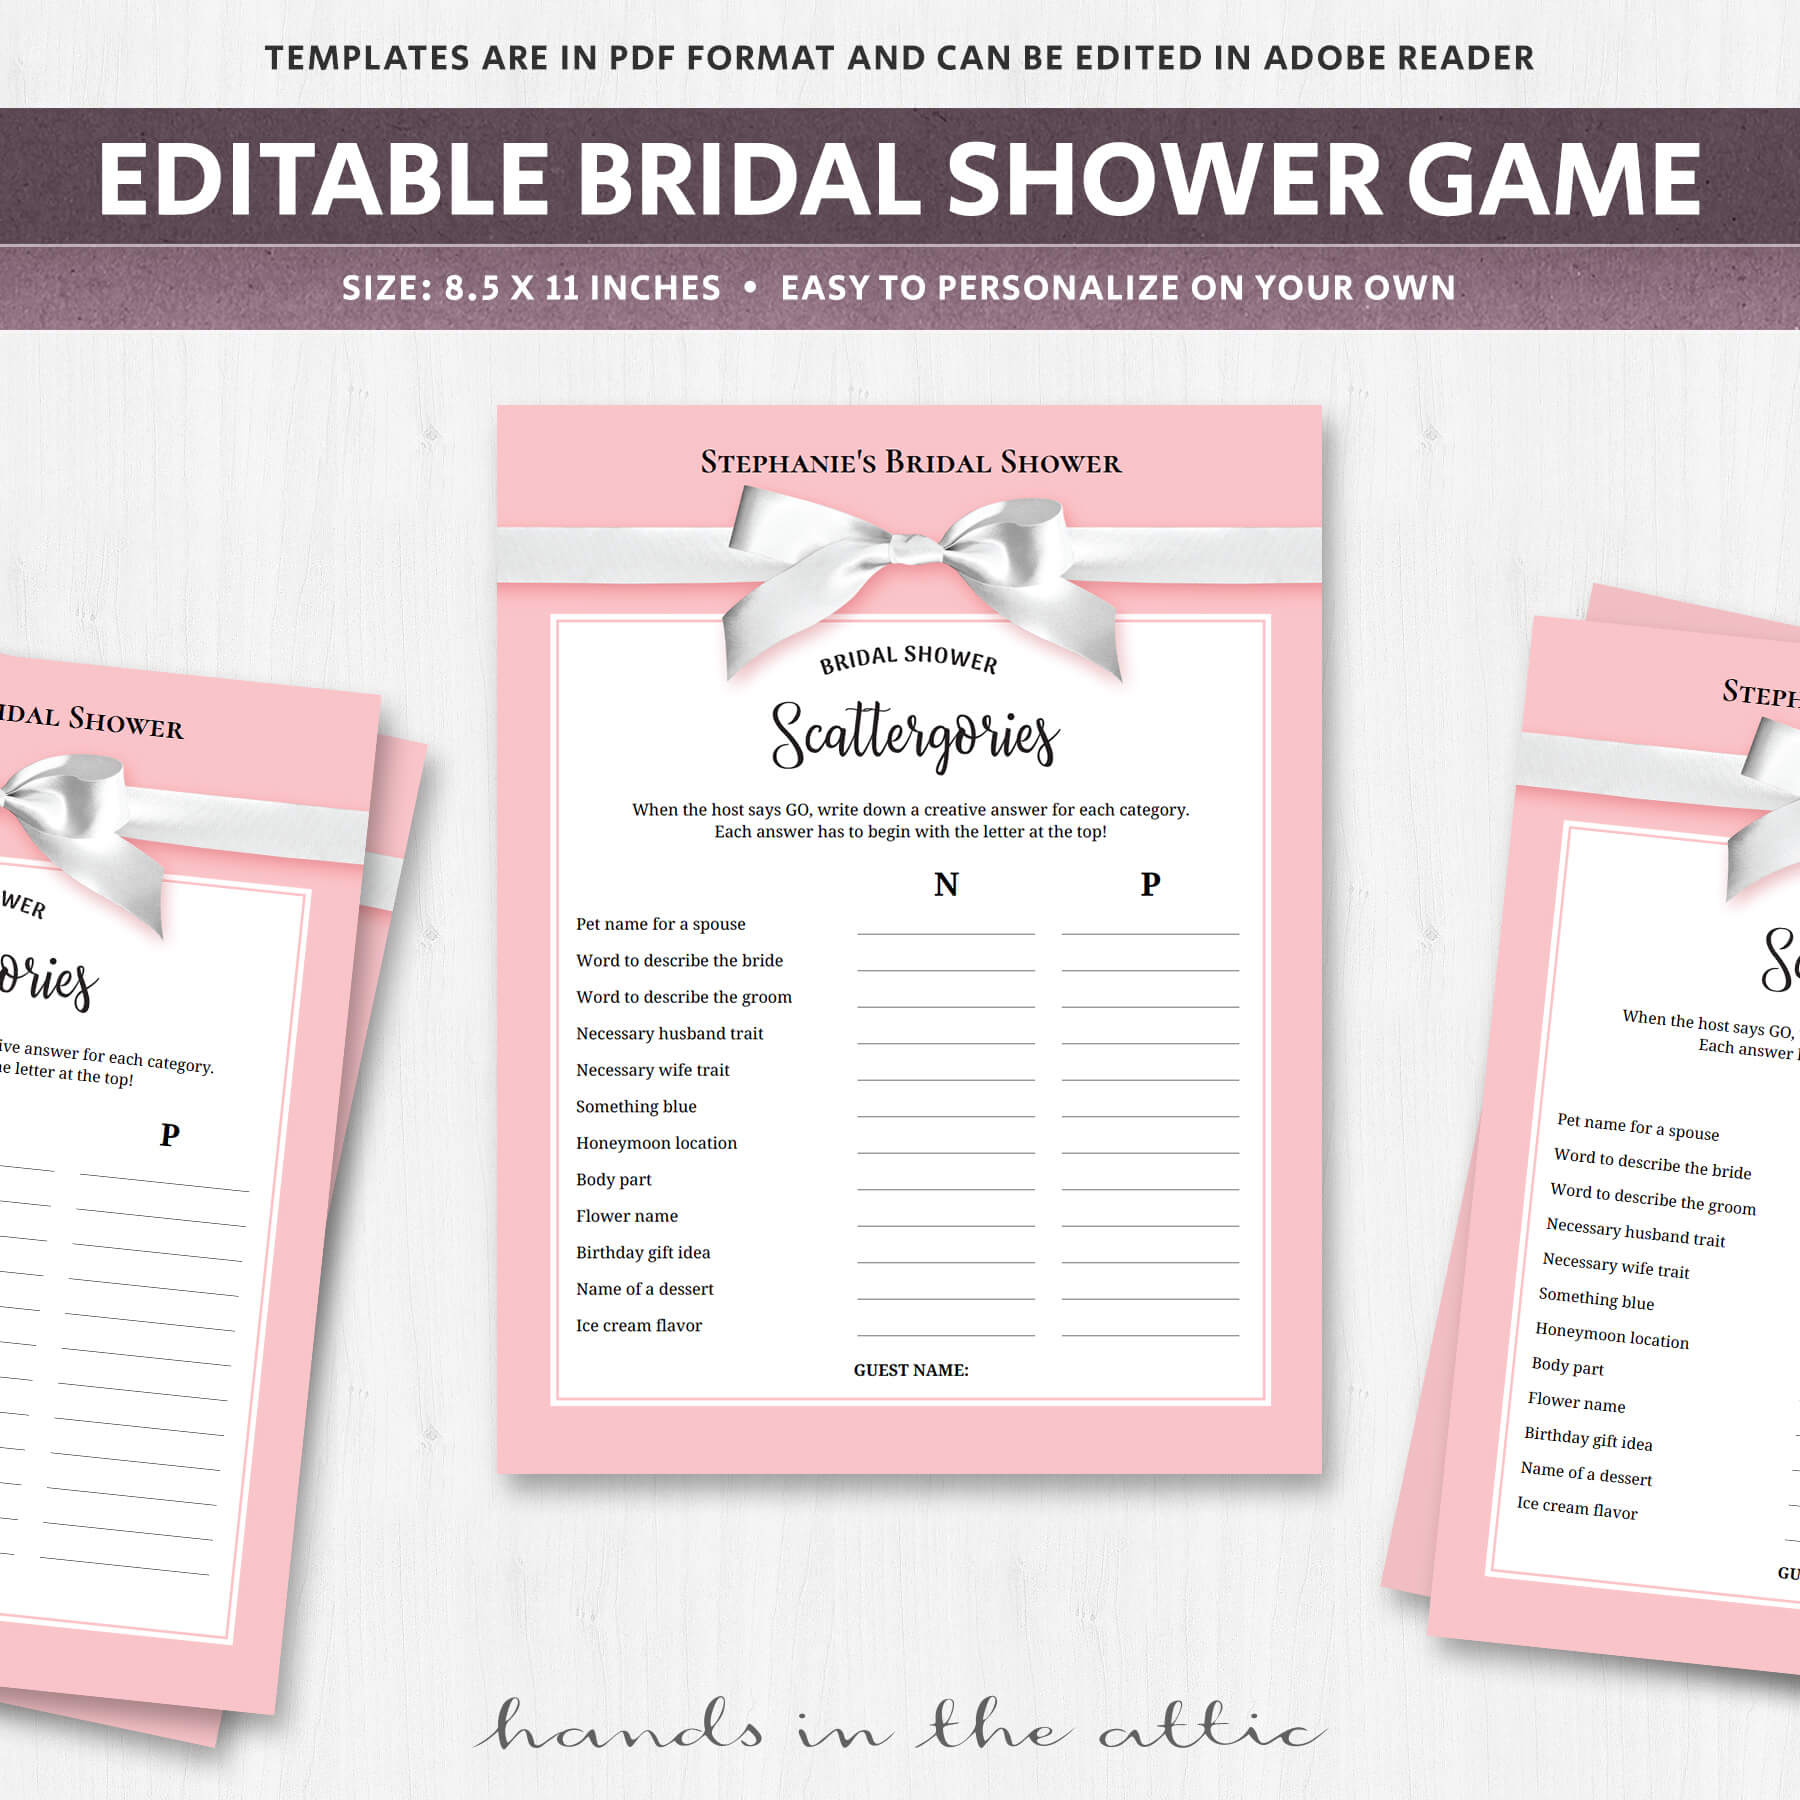 image regarding Printable Scattergories referred to as Bridal Shower Scattergories Printable - Crimson